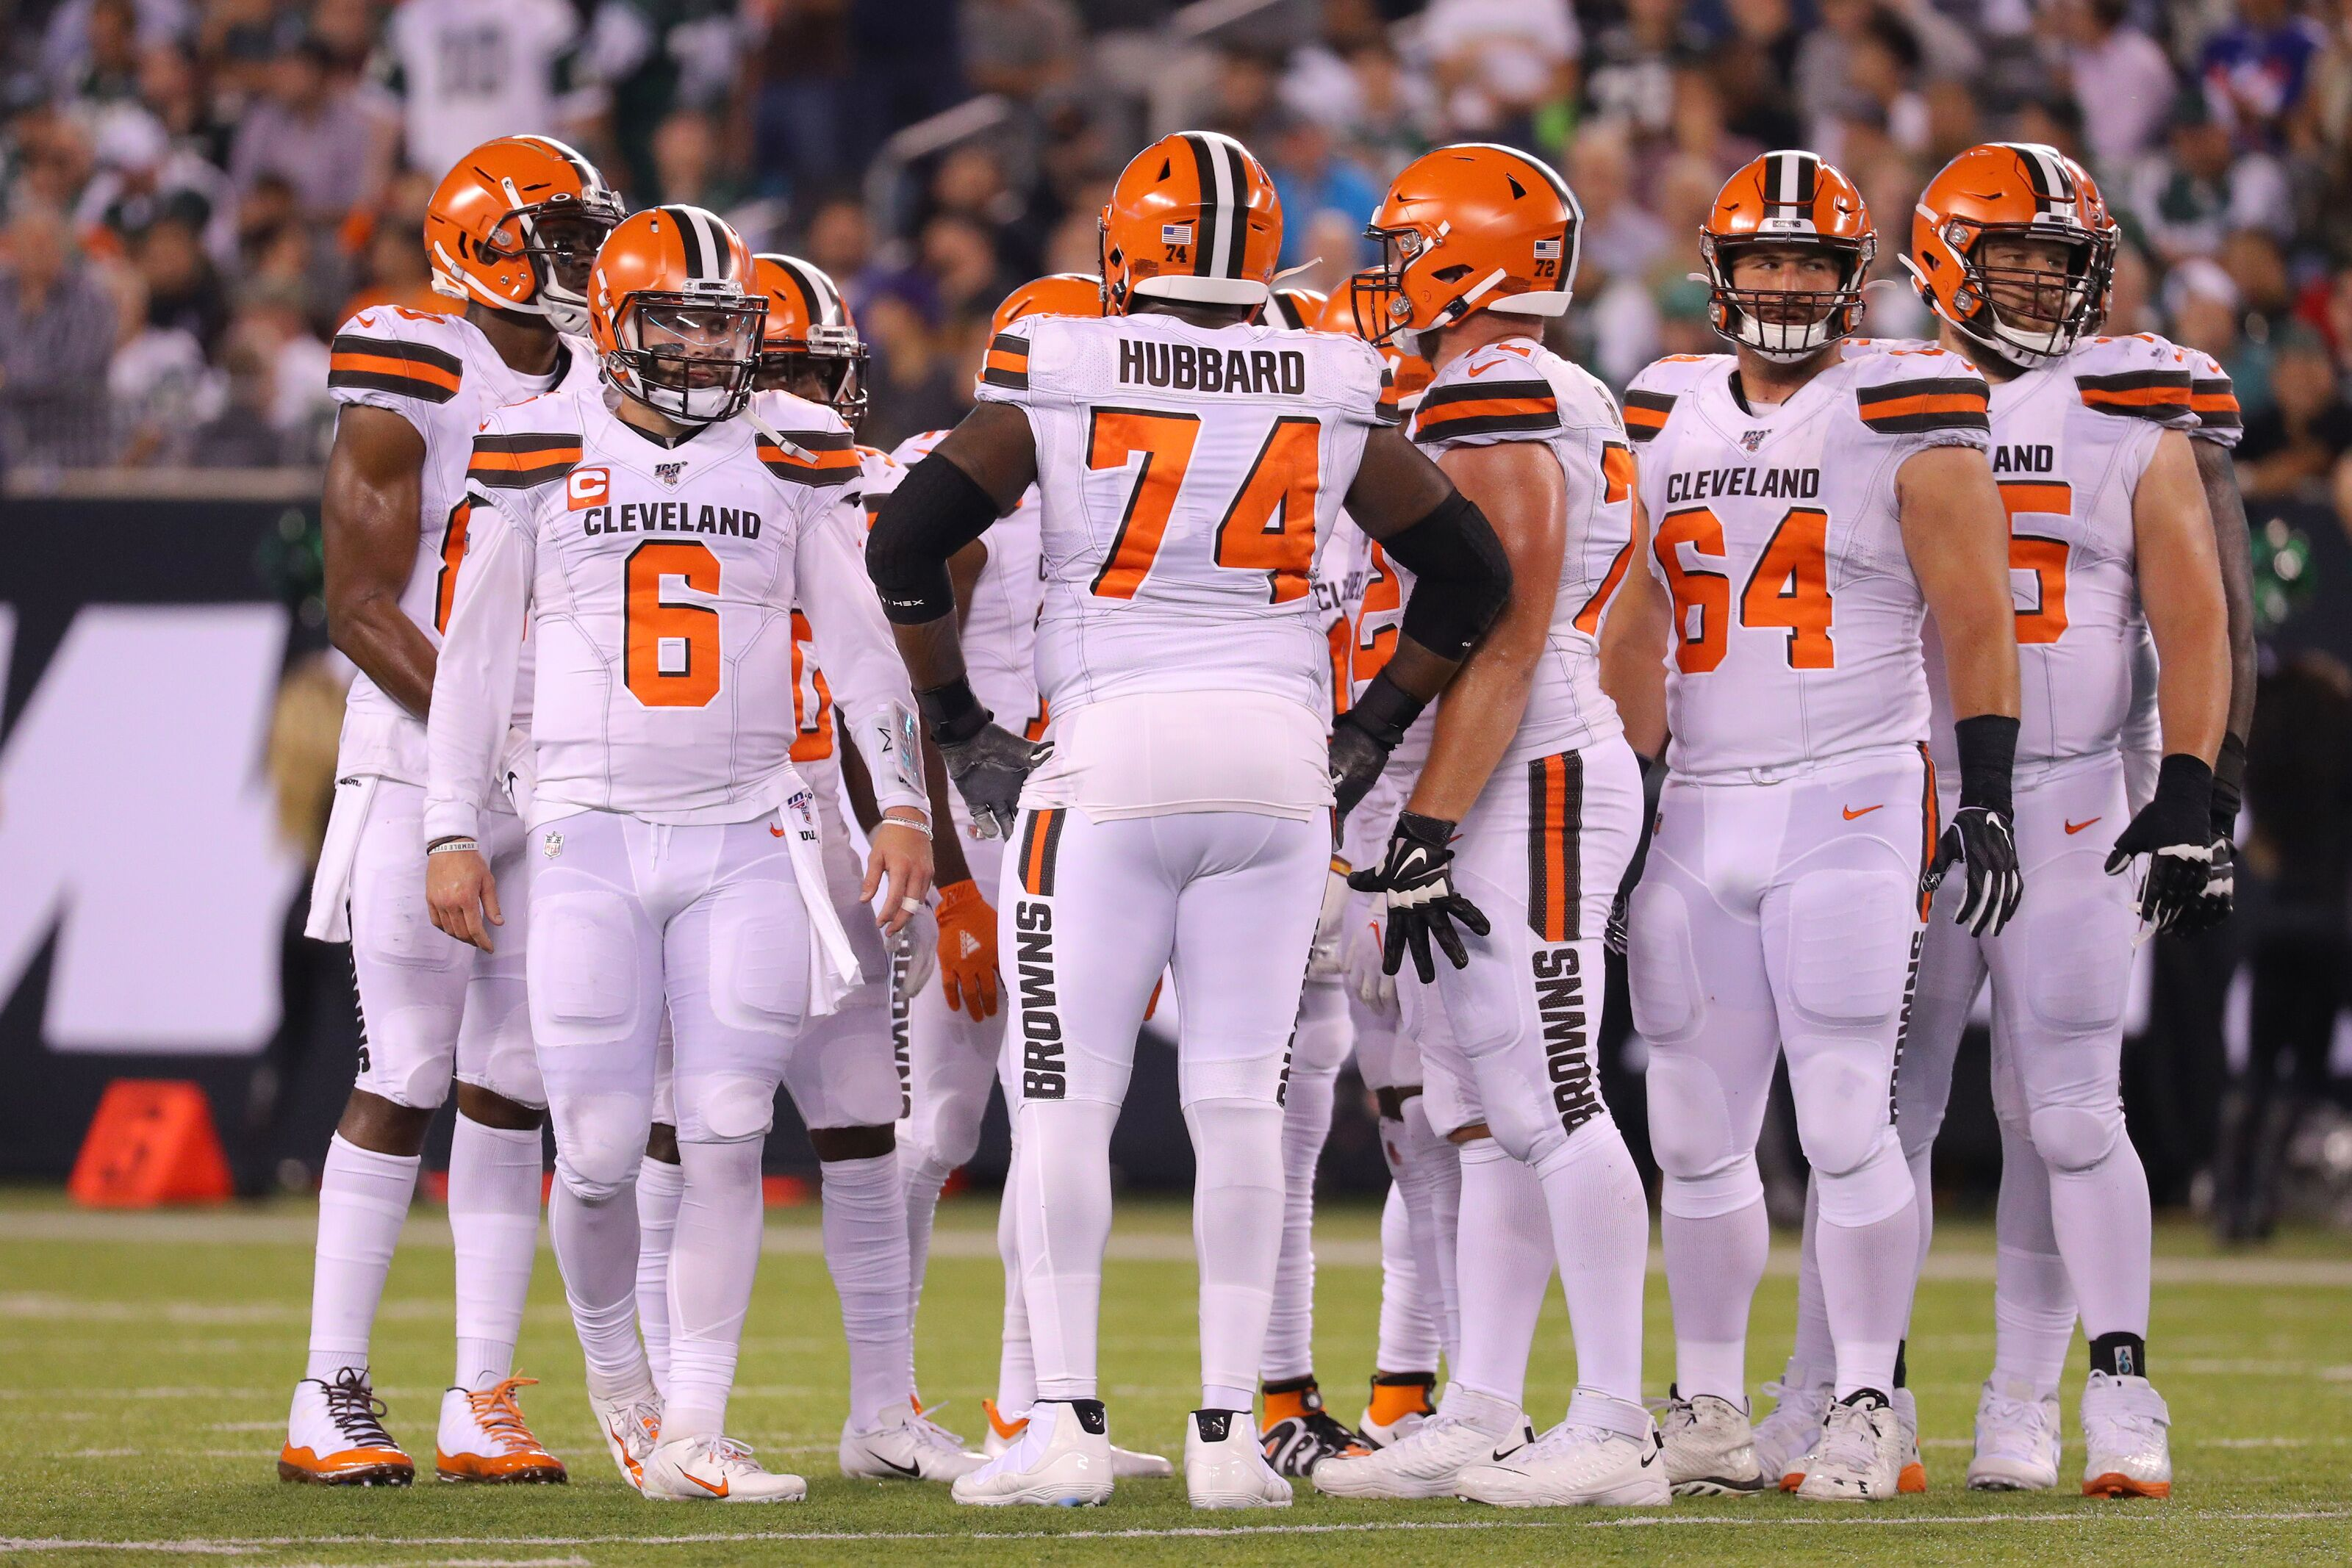 Cleveland Browns can move into first place with a win on Sunday Night Football